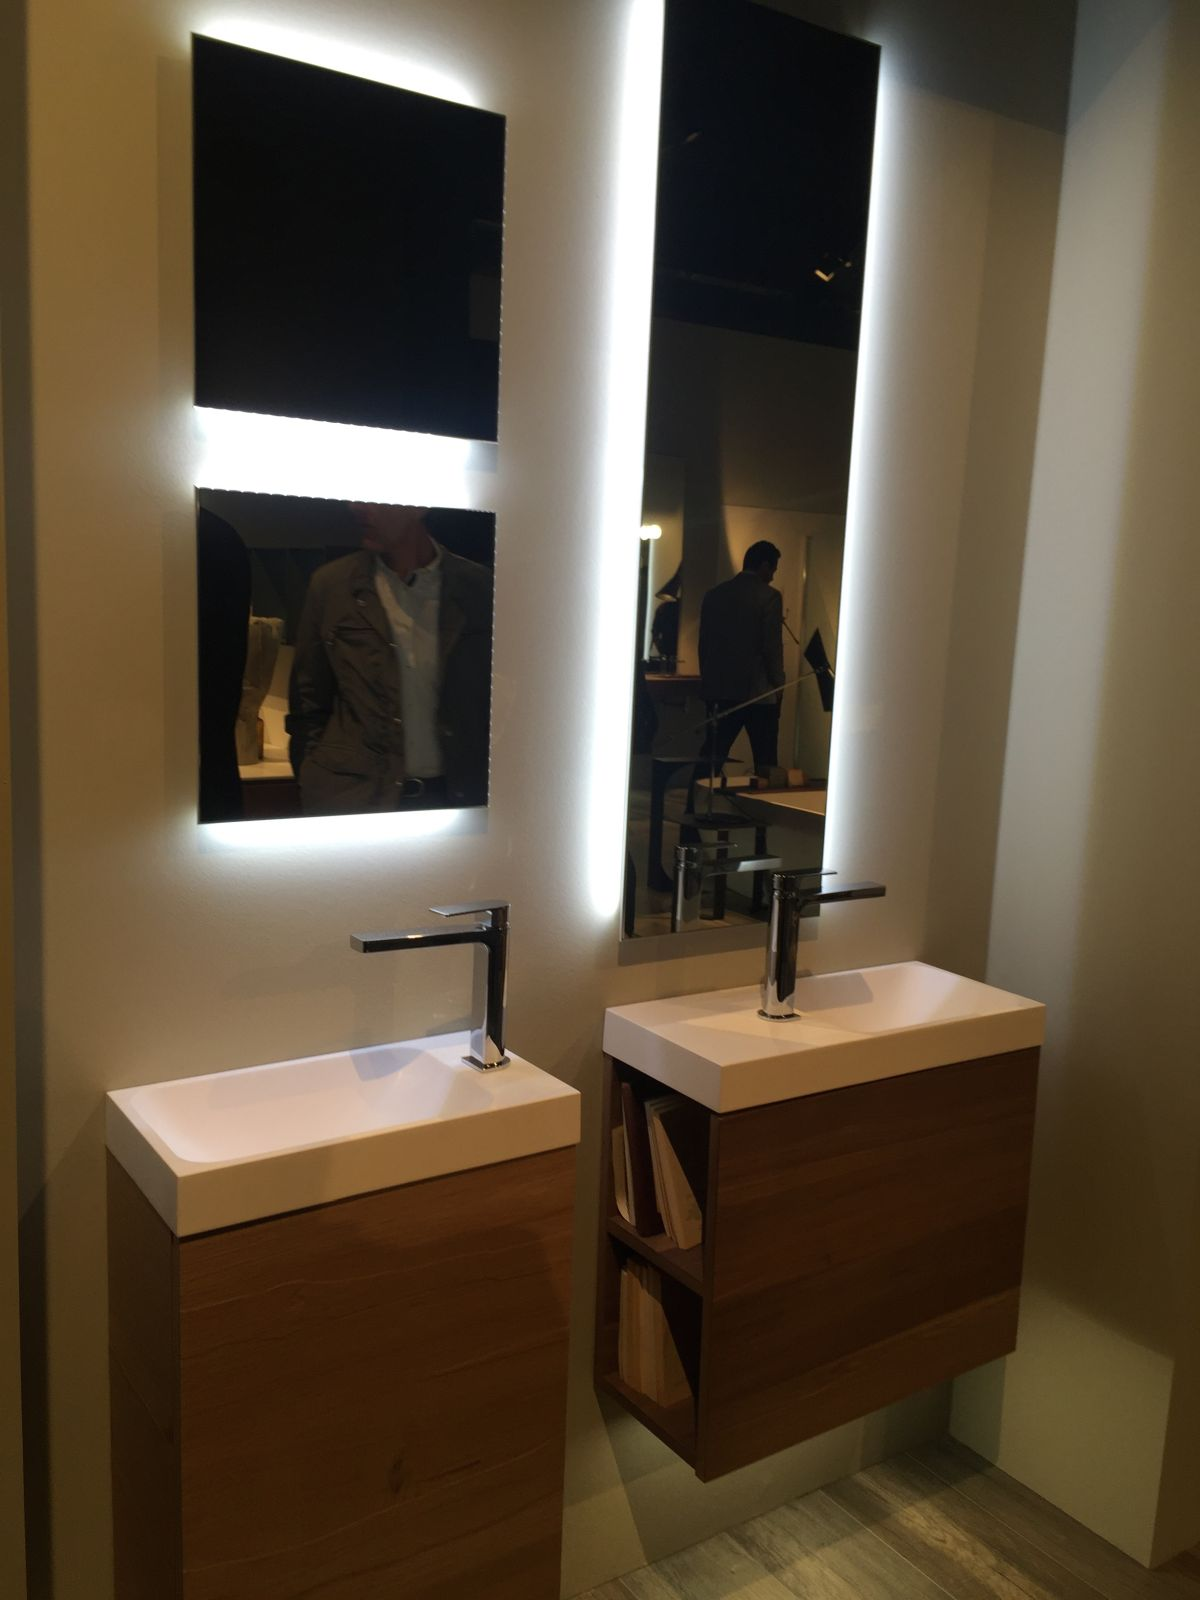 Tiny bathroom vanity with storage